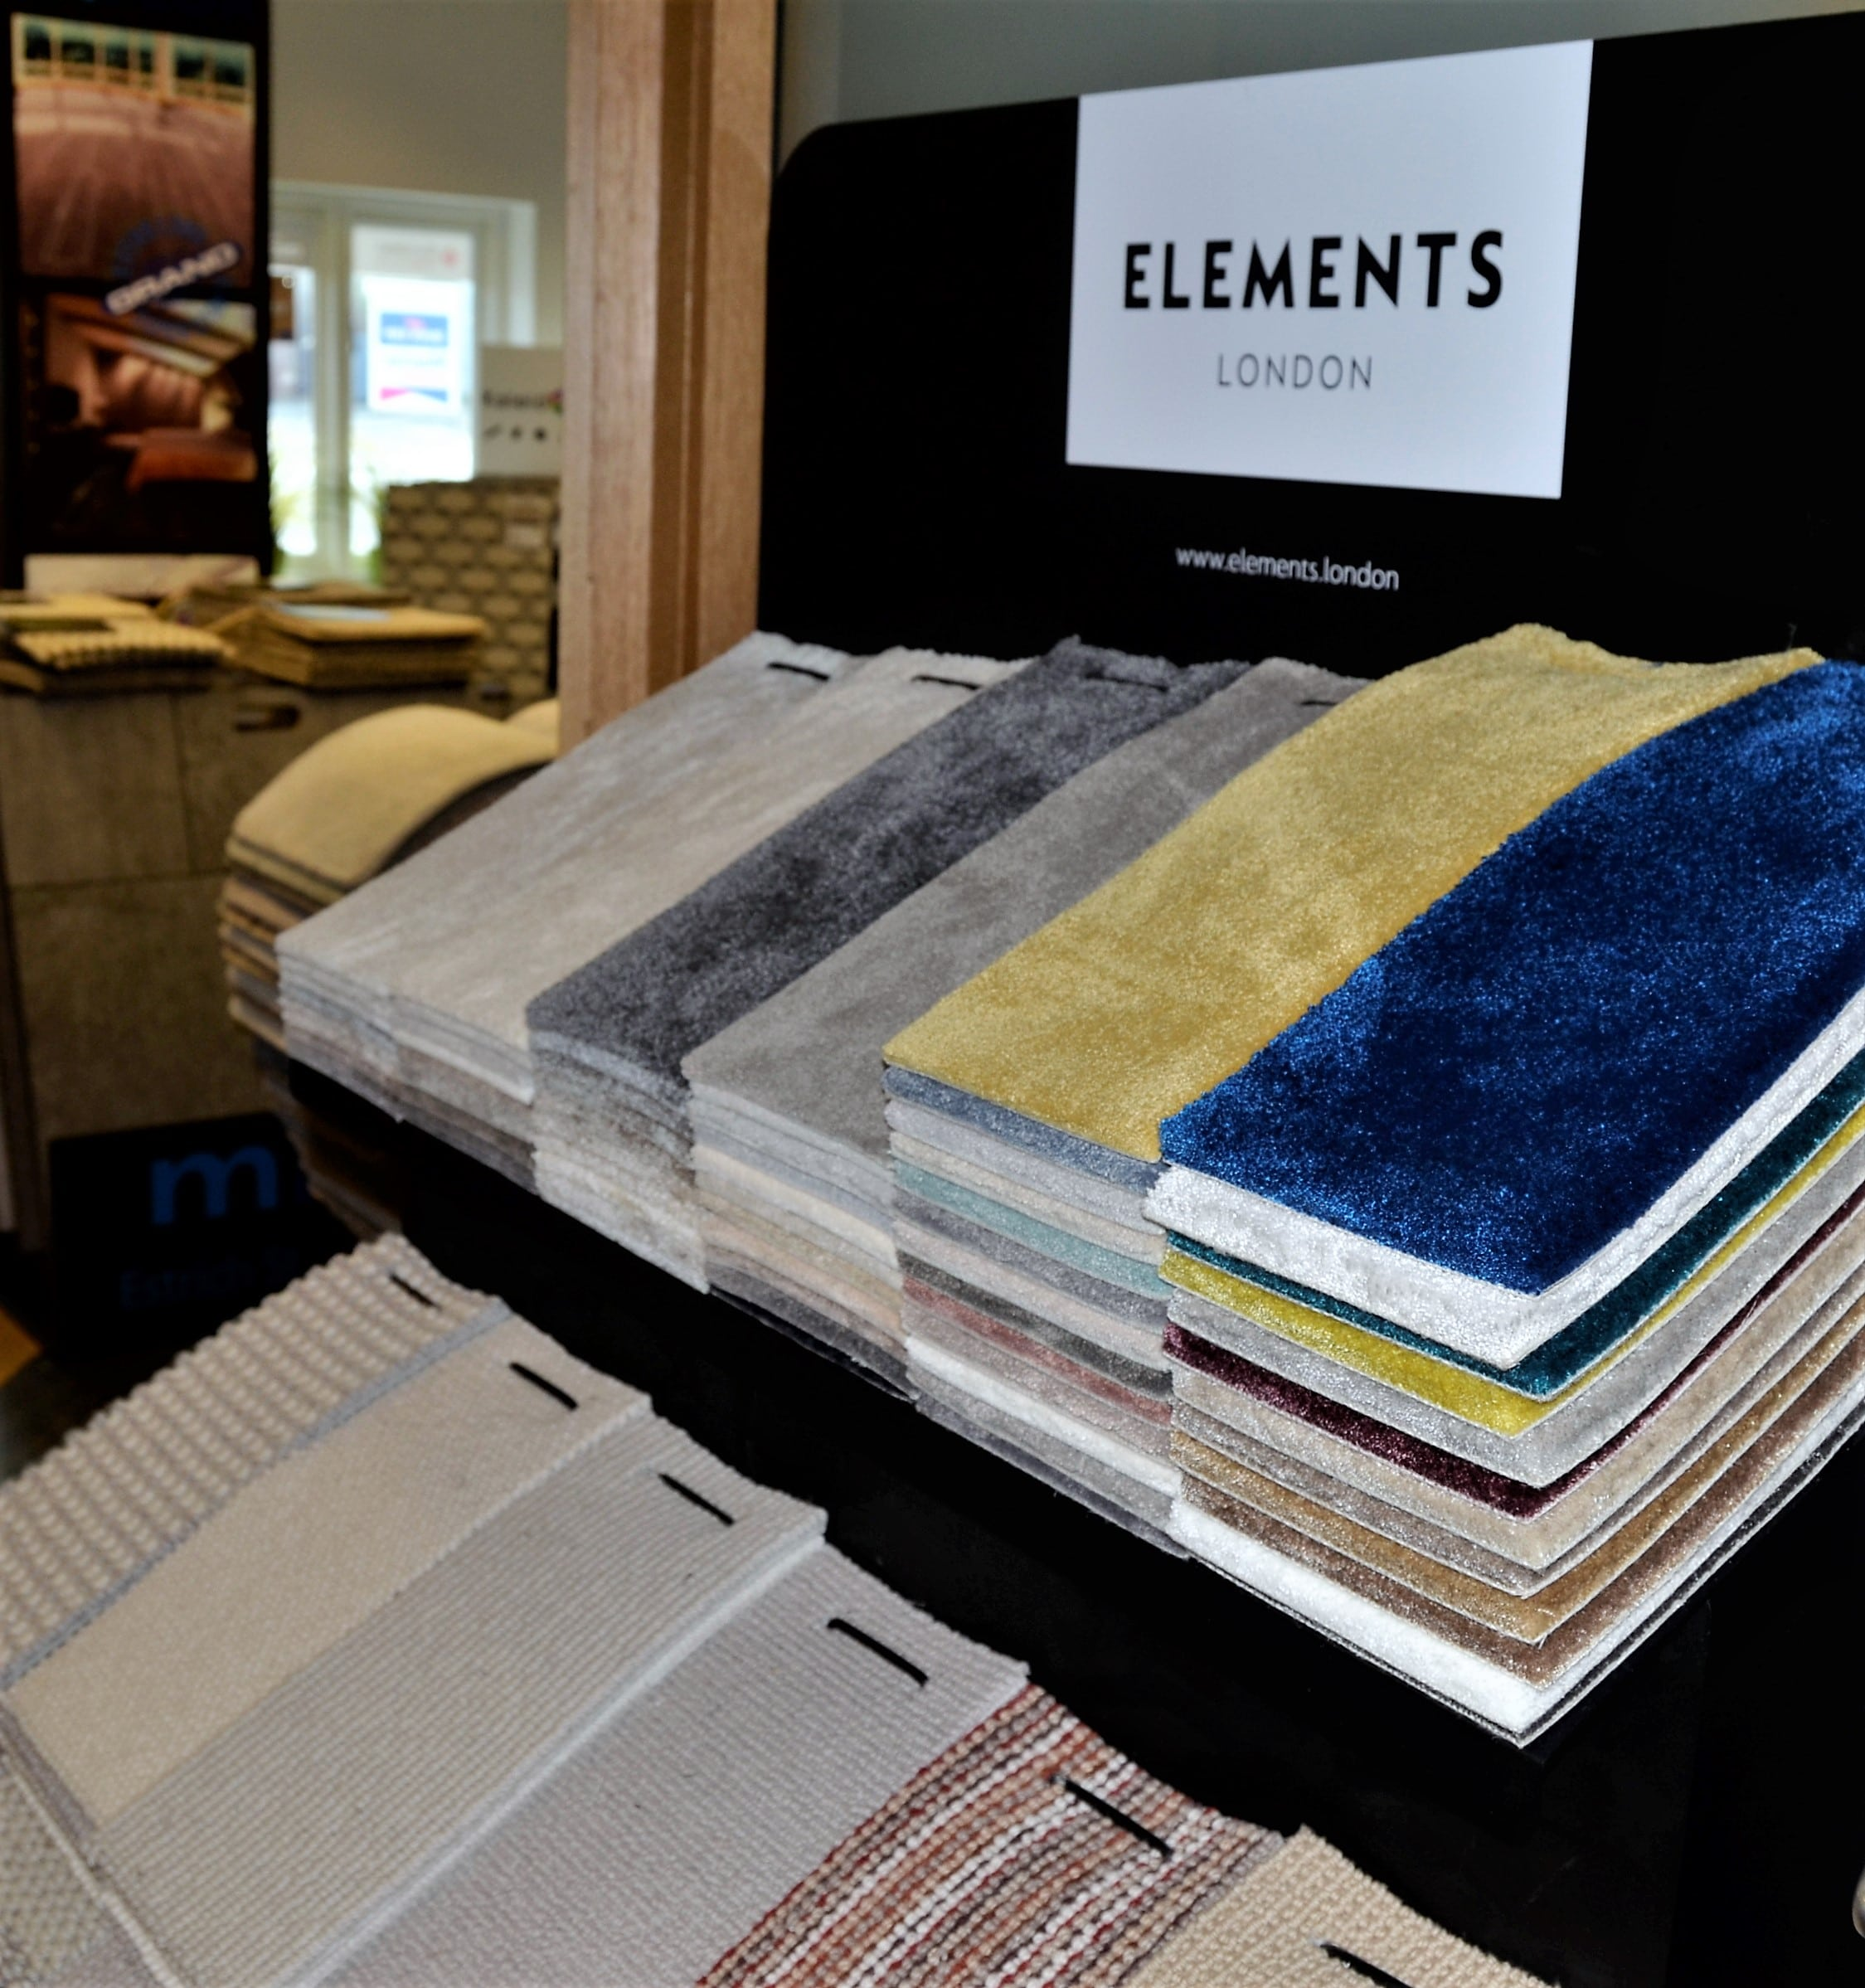 Elements London luxury heavy wear carpets available at Knutsford Flooring 4 You showroom